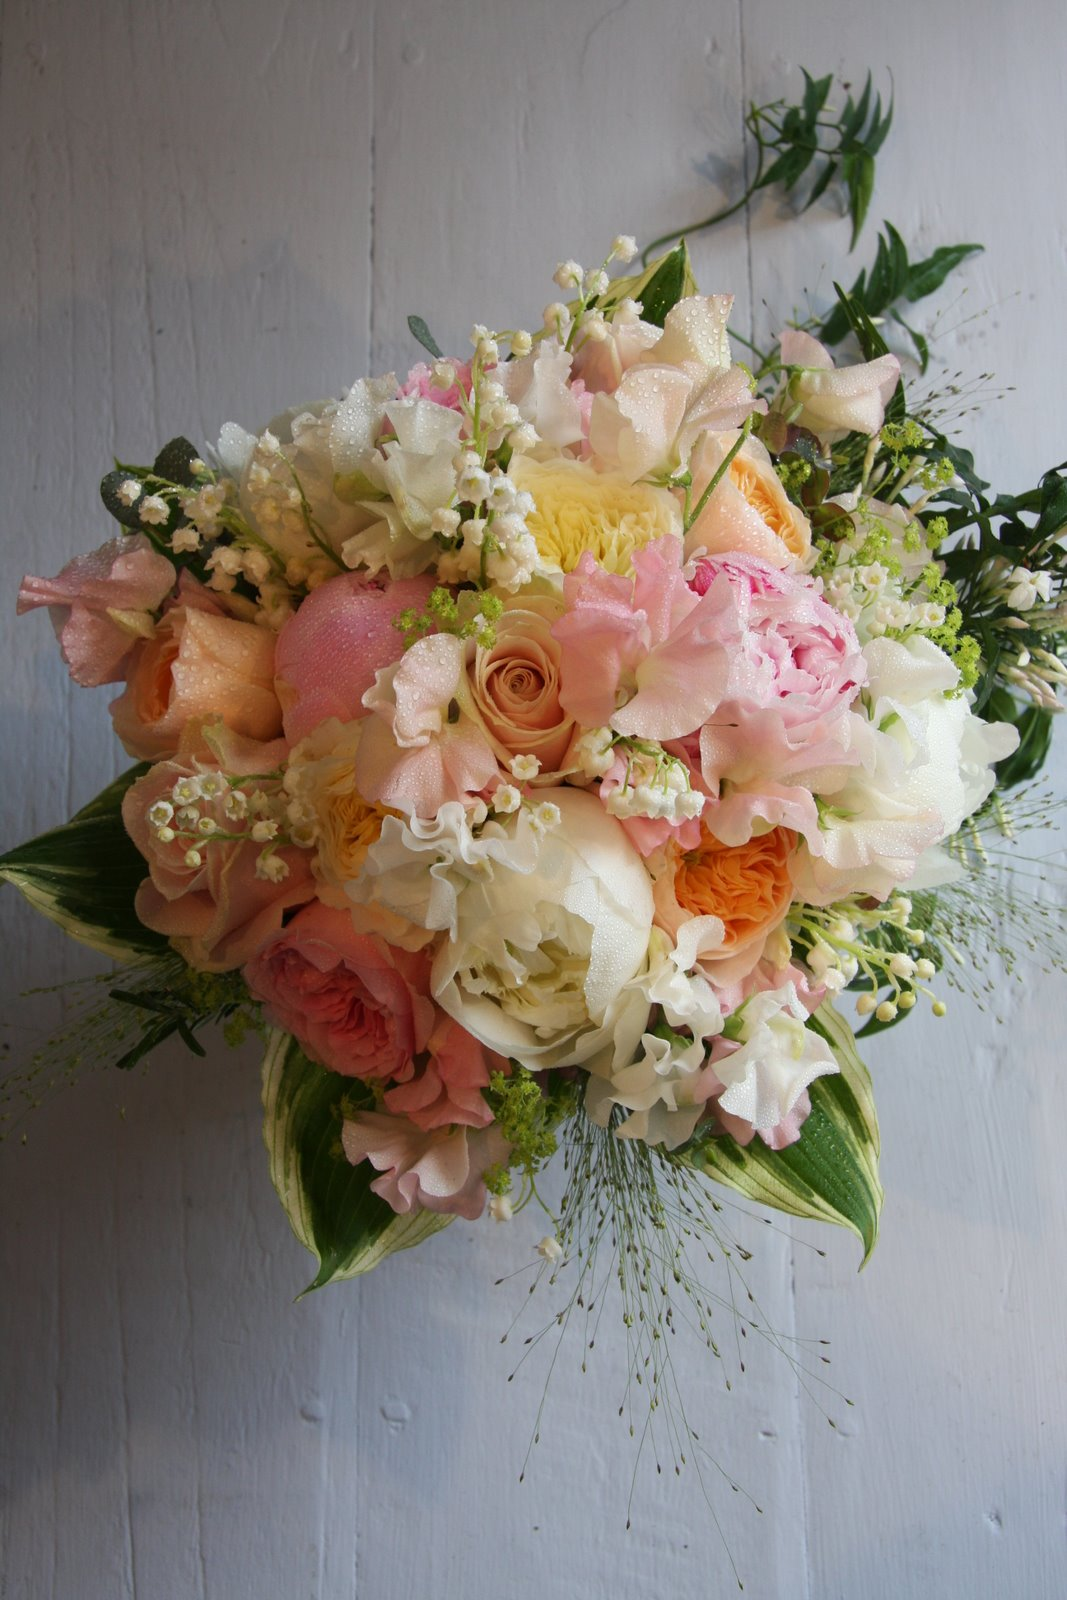 The Flower Magician Sweetest Pinks Delicate Apricots Lovely